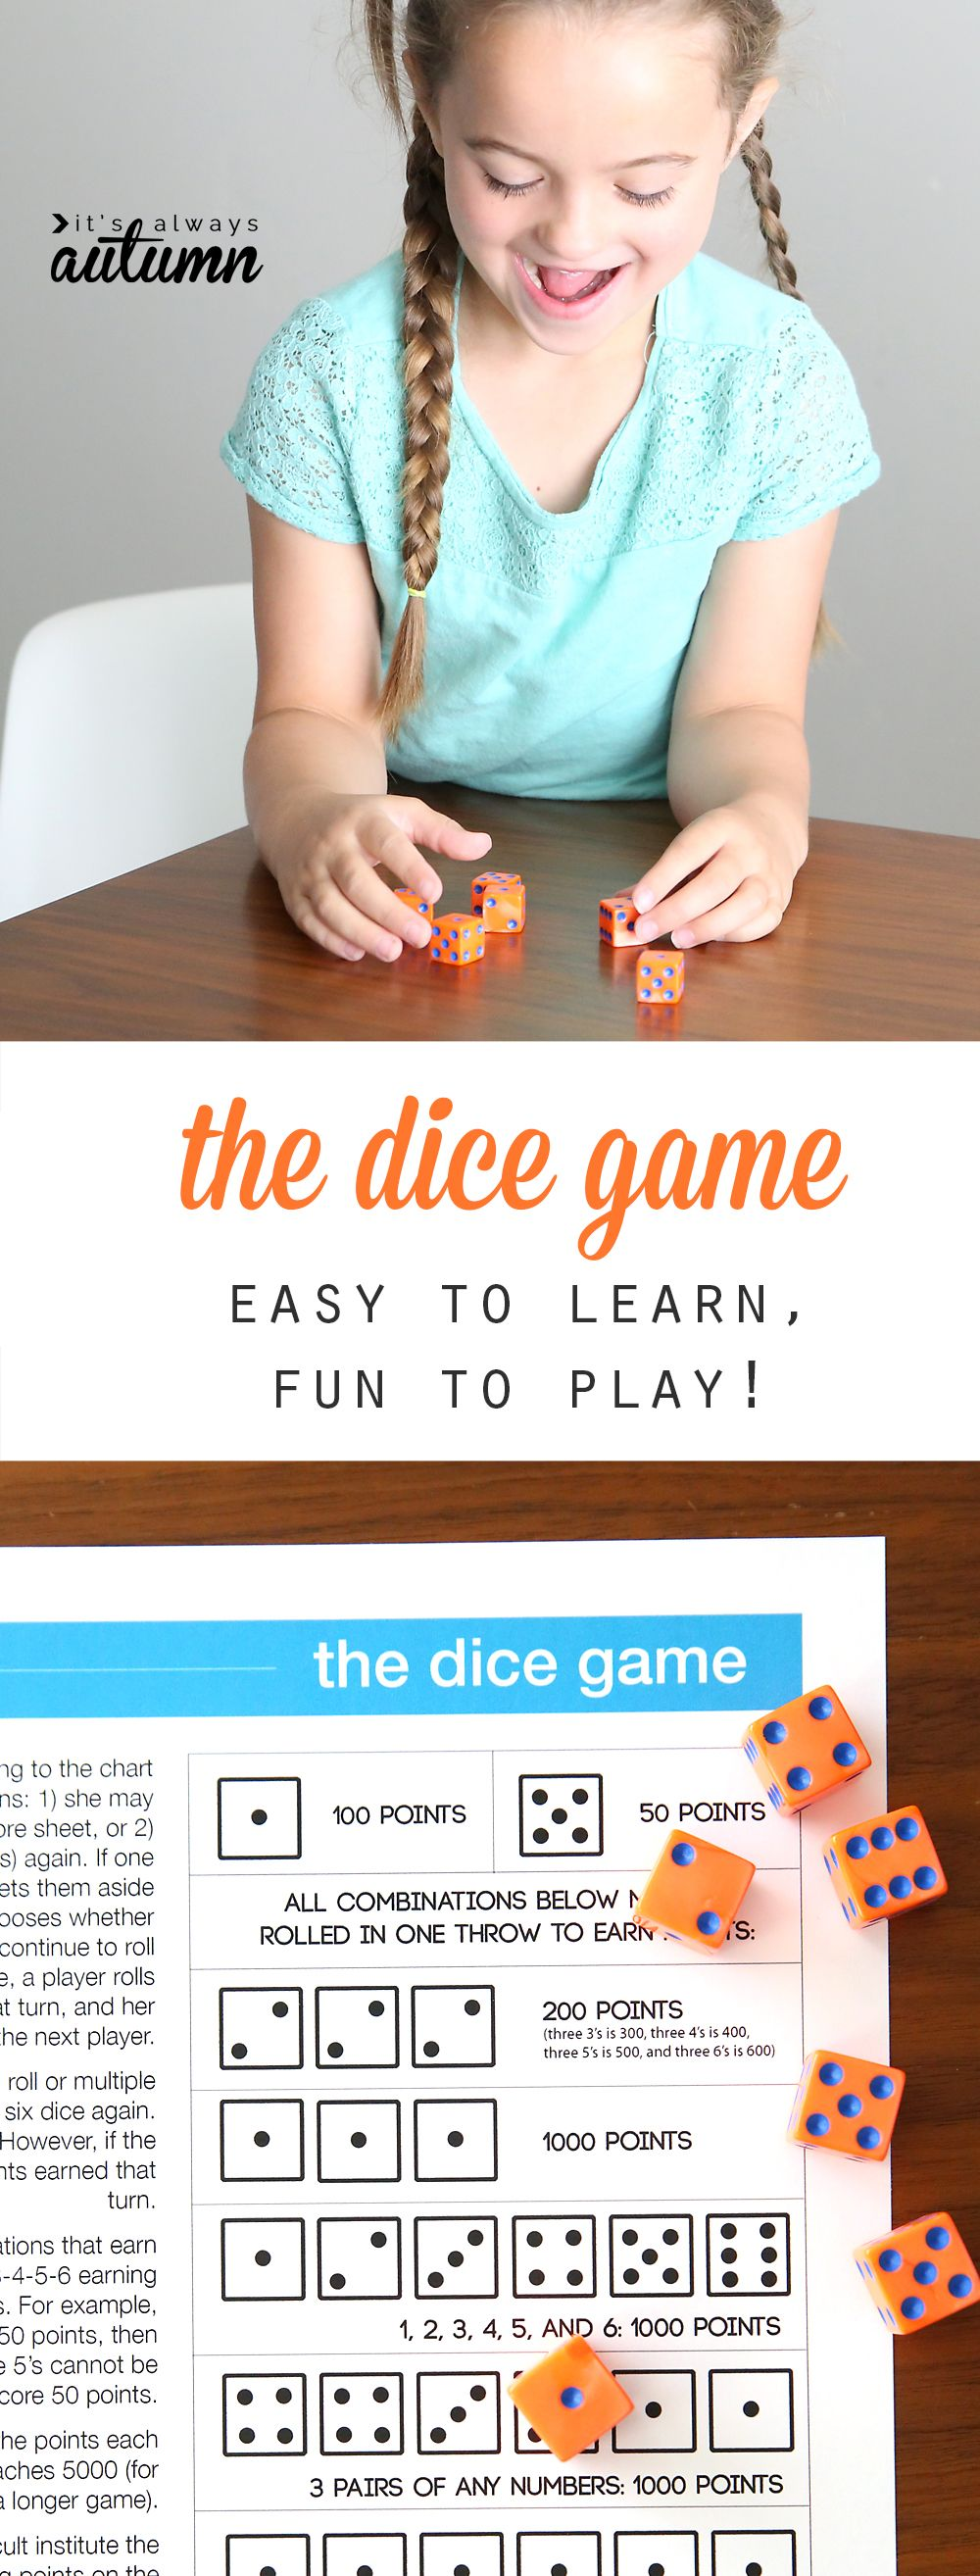 the dice game Free games for kids, Easy games for kids